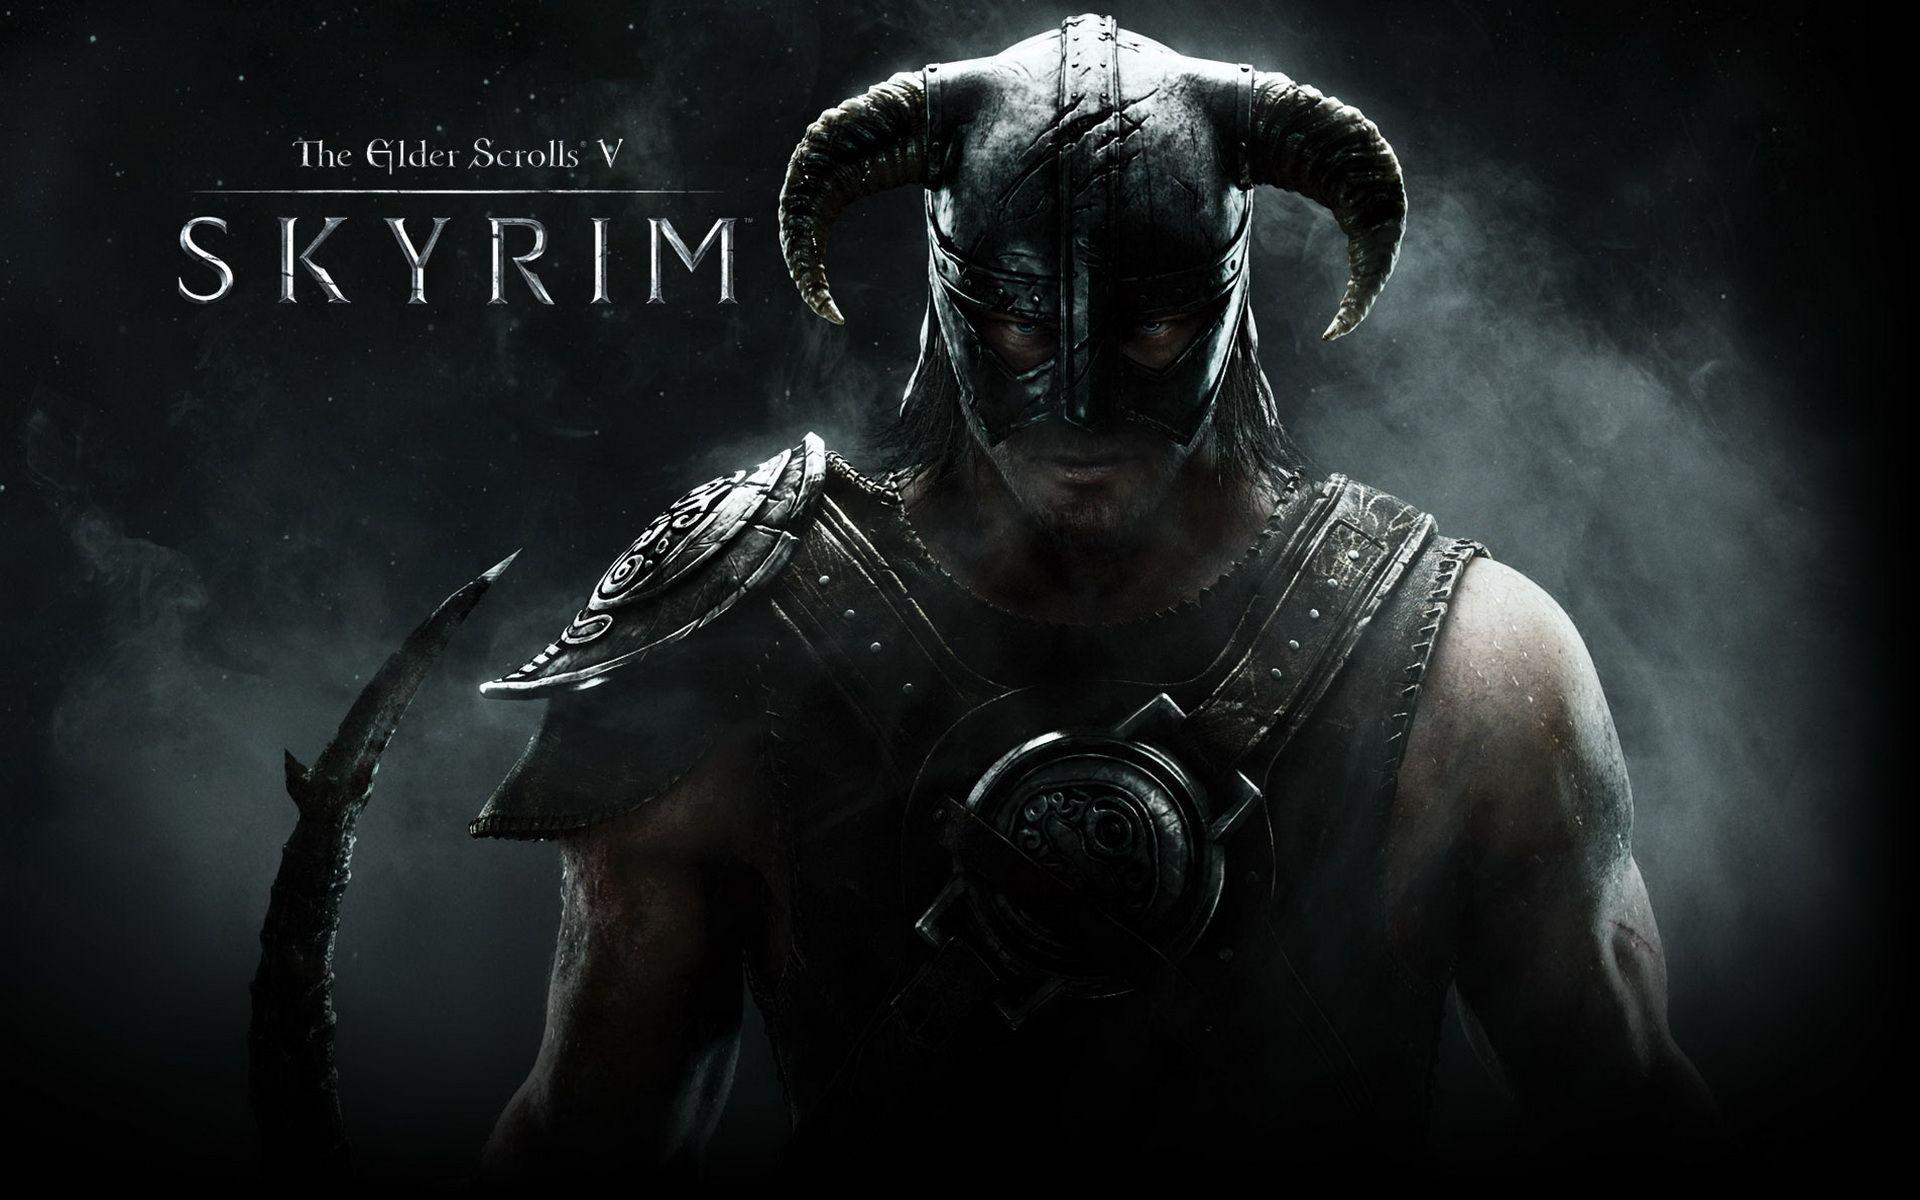 The Elder Scrolls V Skyrim Wallpapers | HD Wallpapers